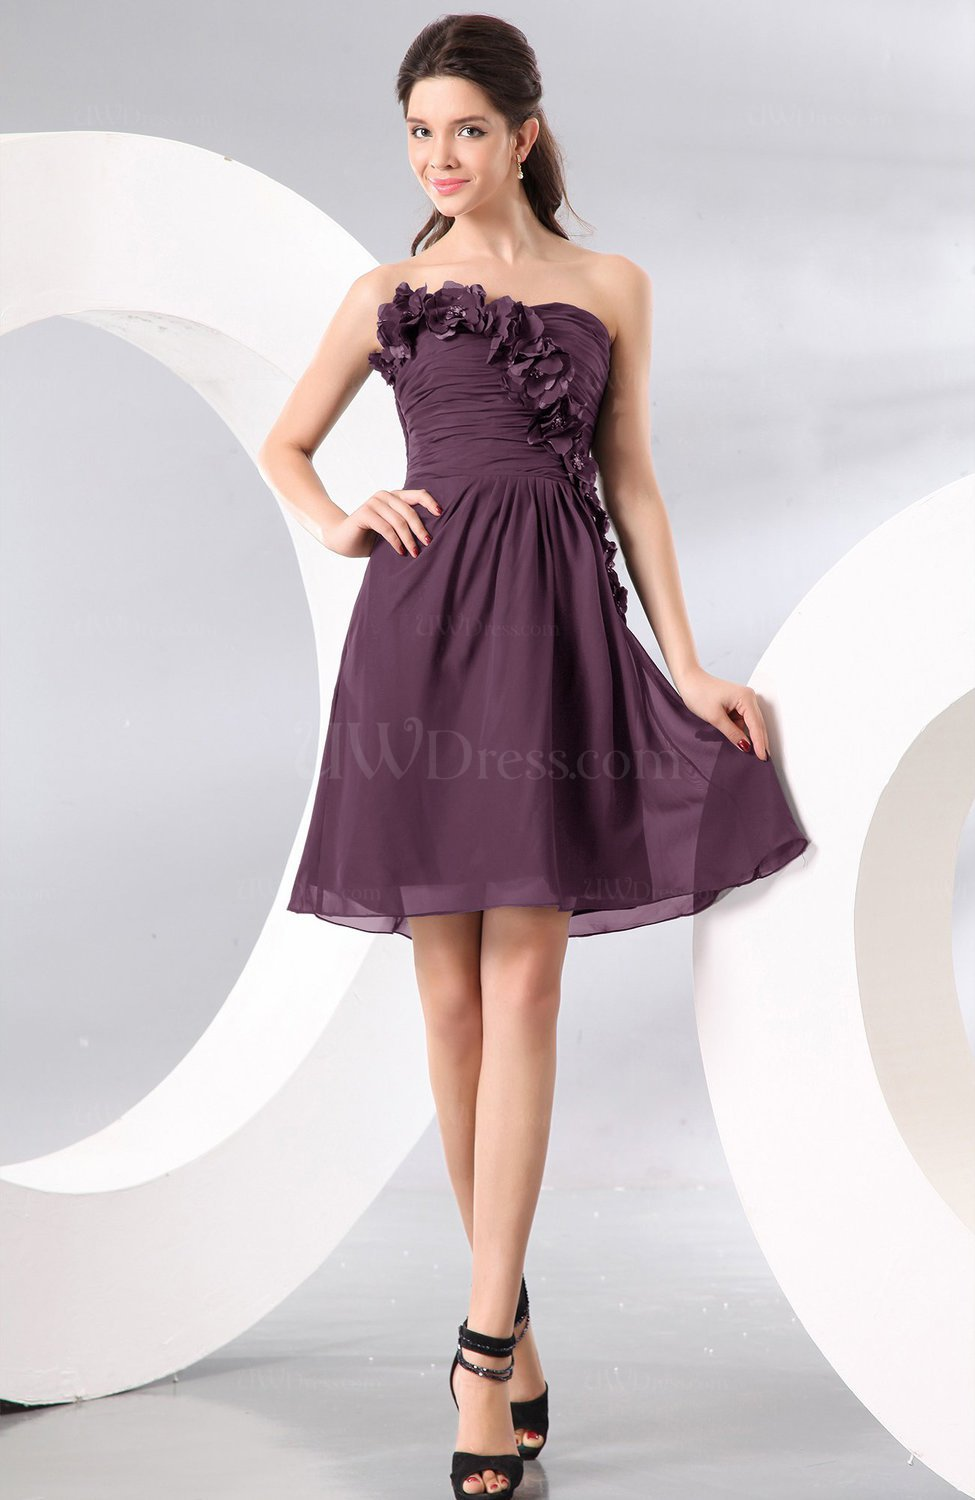 0c0fae018a6 Plum Plain A-line Strapless Sleeveless Zipper Knee Length Homecoming  Dresses (Style D04233)